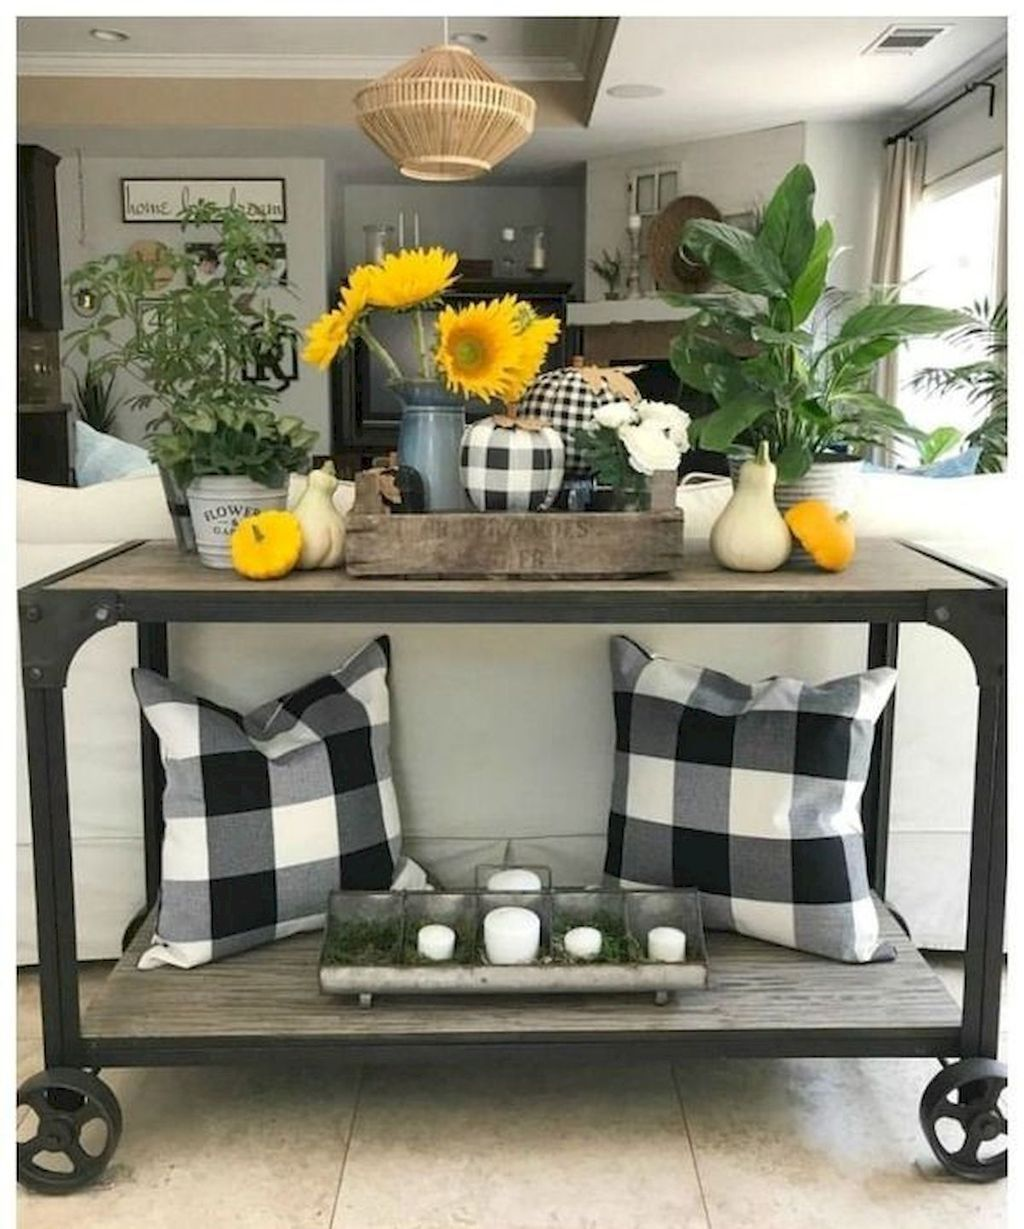 Front Entryway Decorating Ideas The Design Twins: 40 Fascinating Farmhouse Summer Decor Ideas For